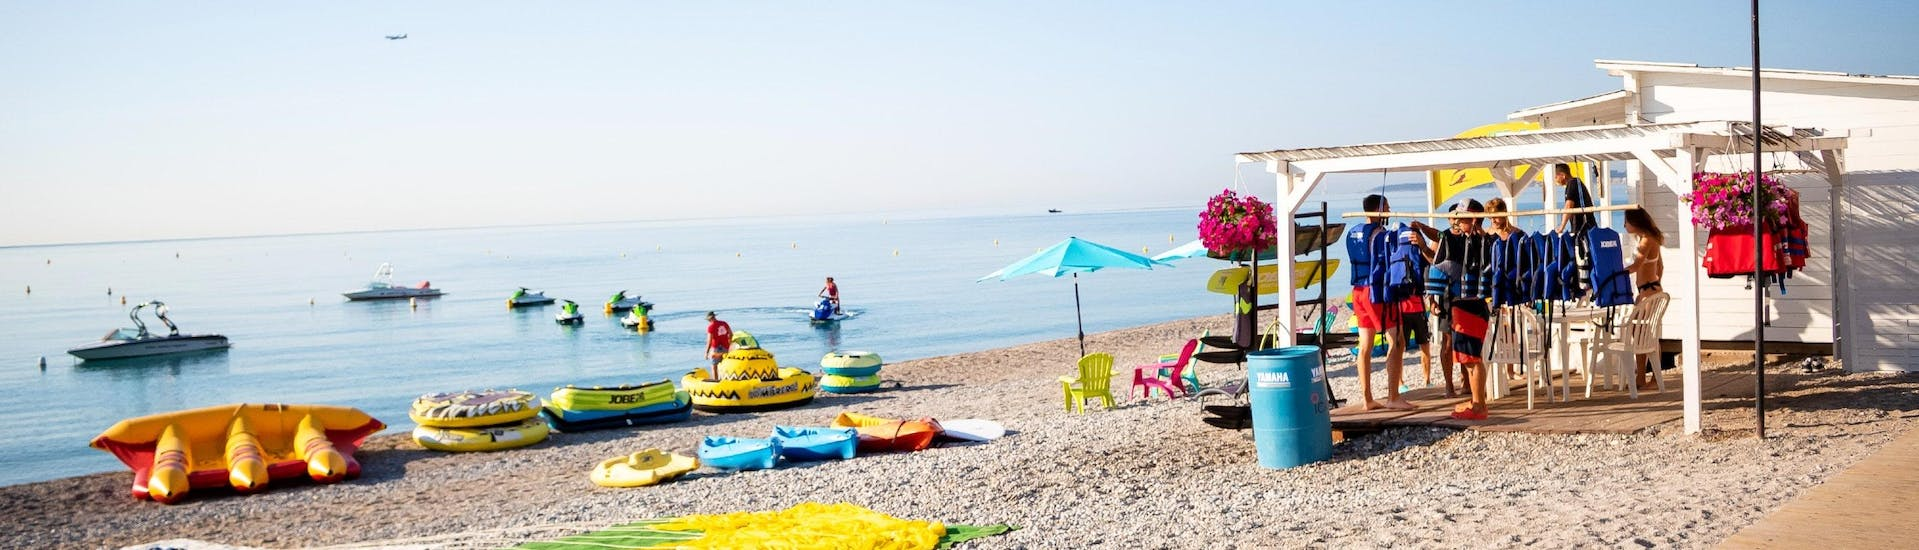 View of the beach in front of Plage des Marines's base in Villeneuve-Loubet and Cagnes-sur-Mer where watersport activities take place.